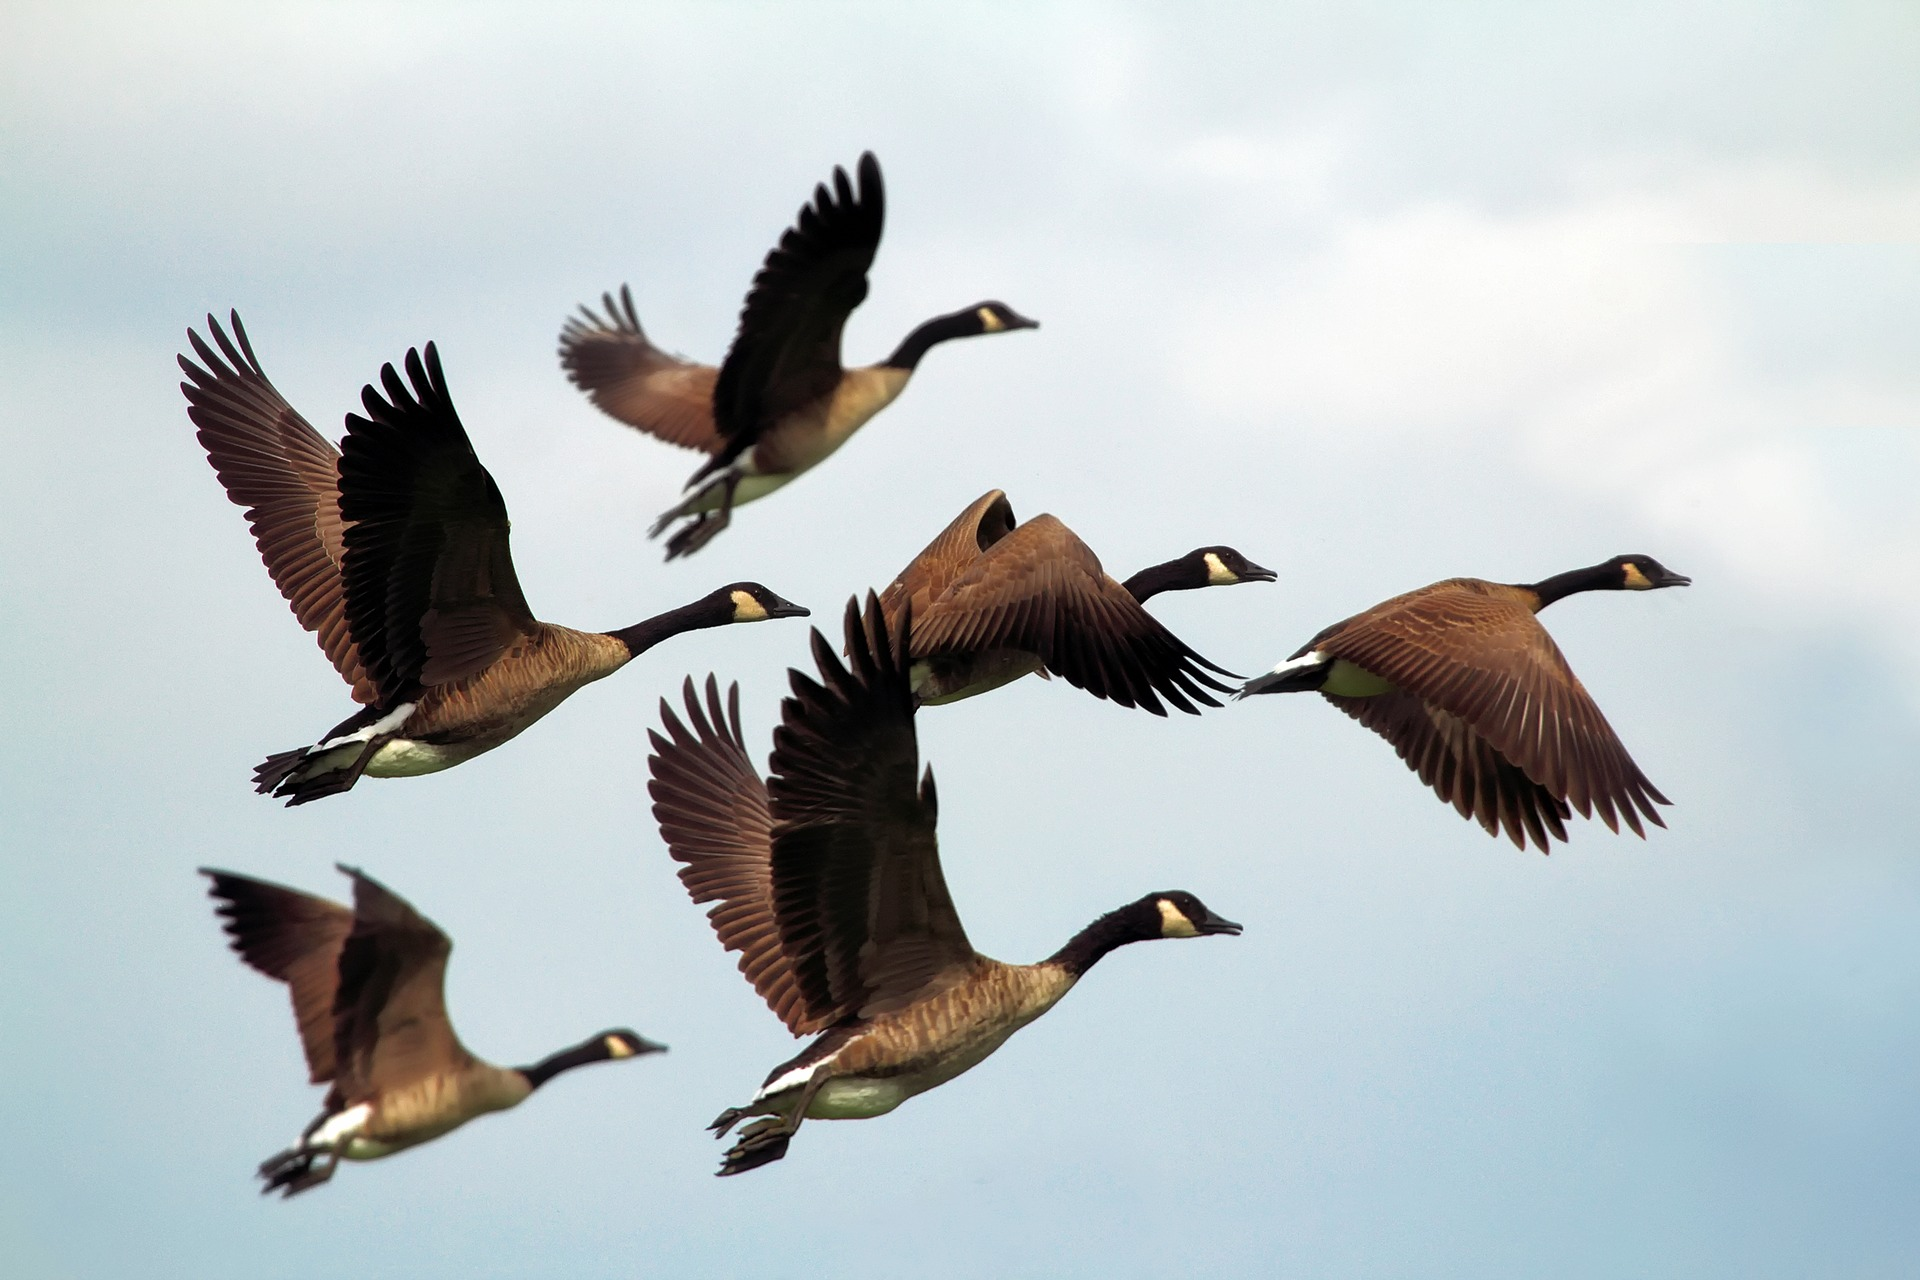 geese-1990202_1920